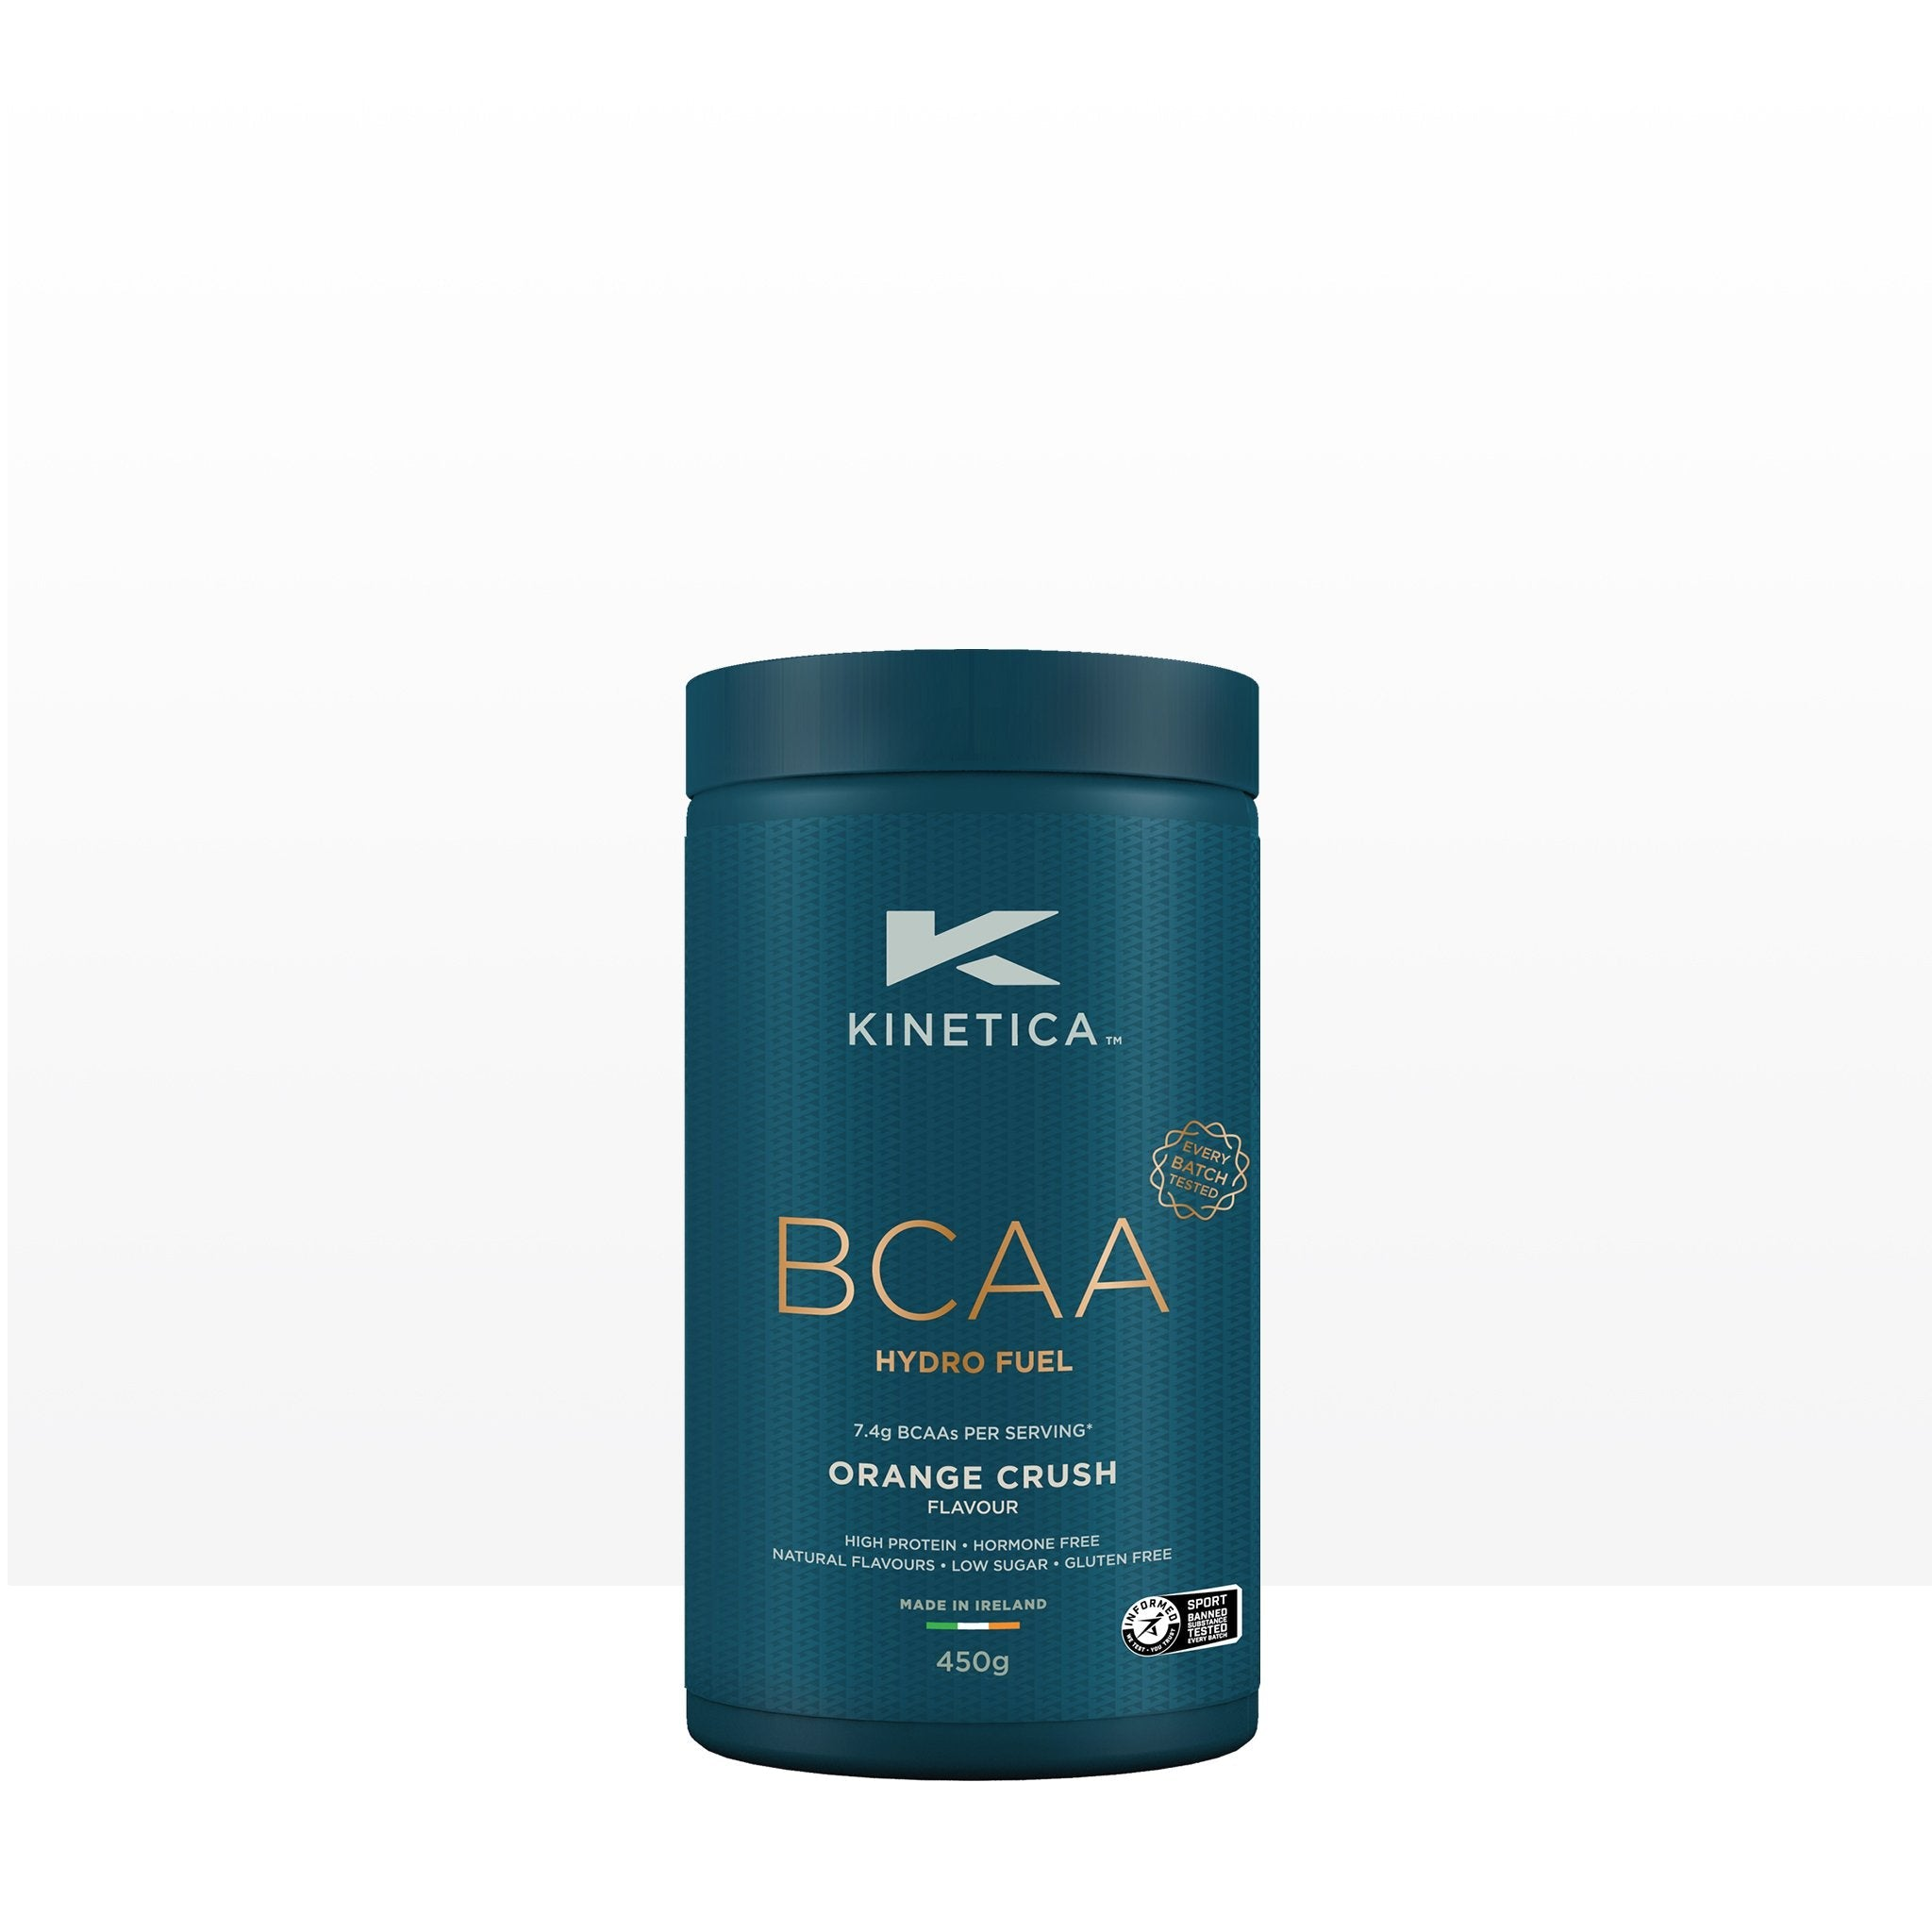 BCAA Hydrofuel Orange Crush